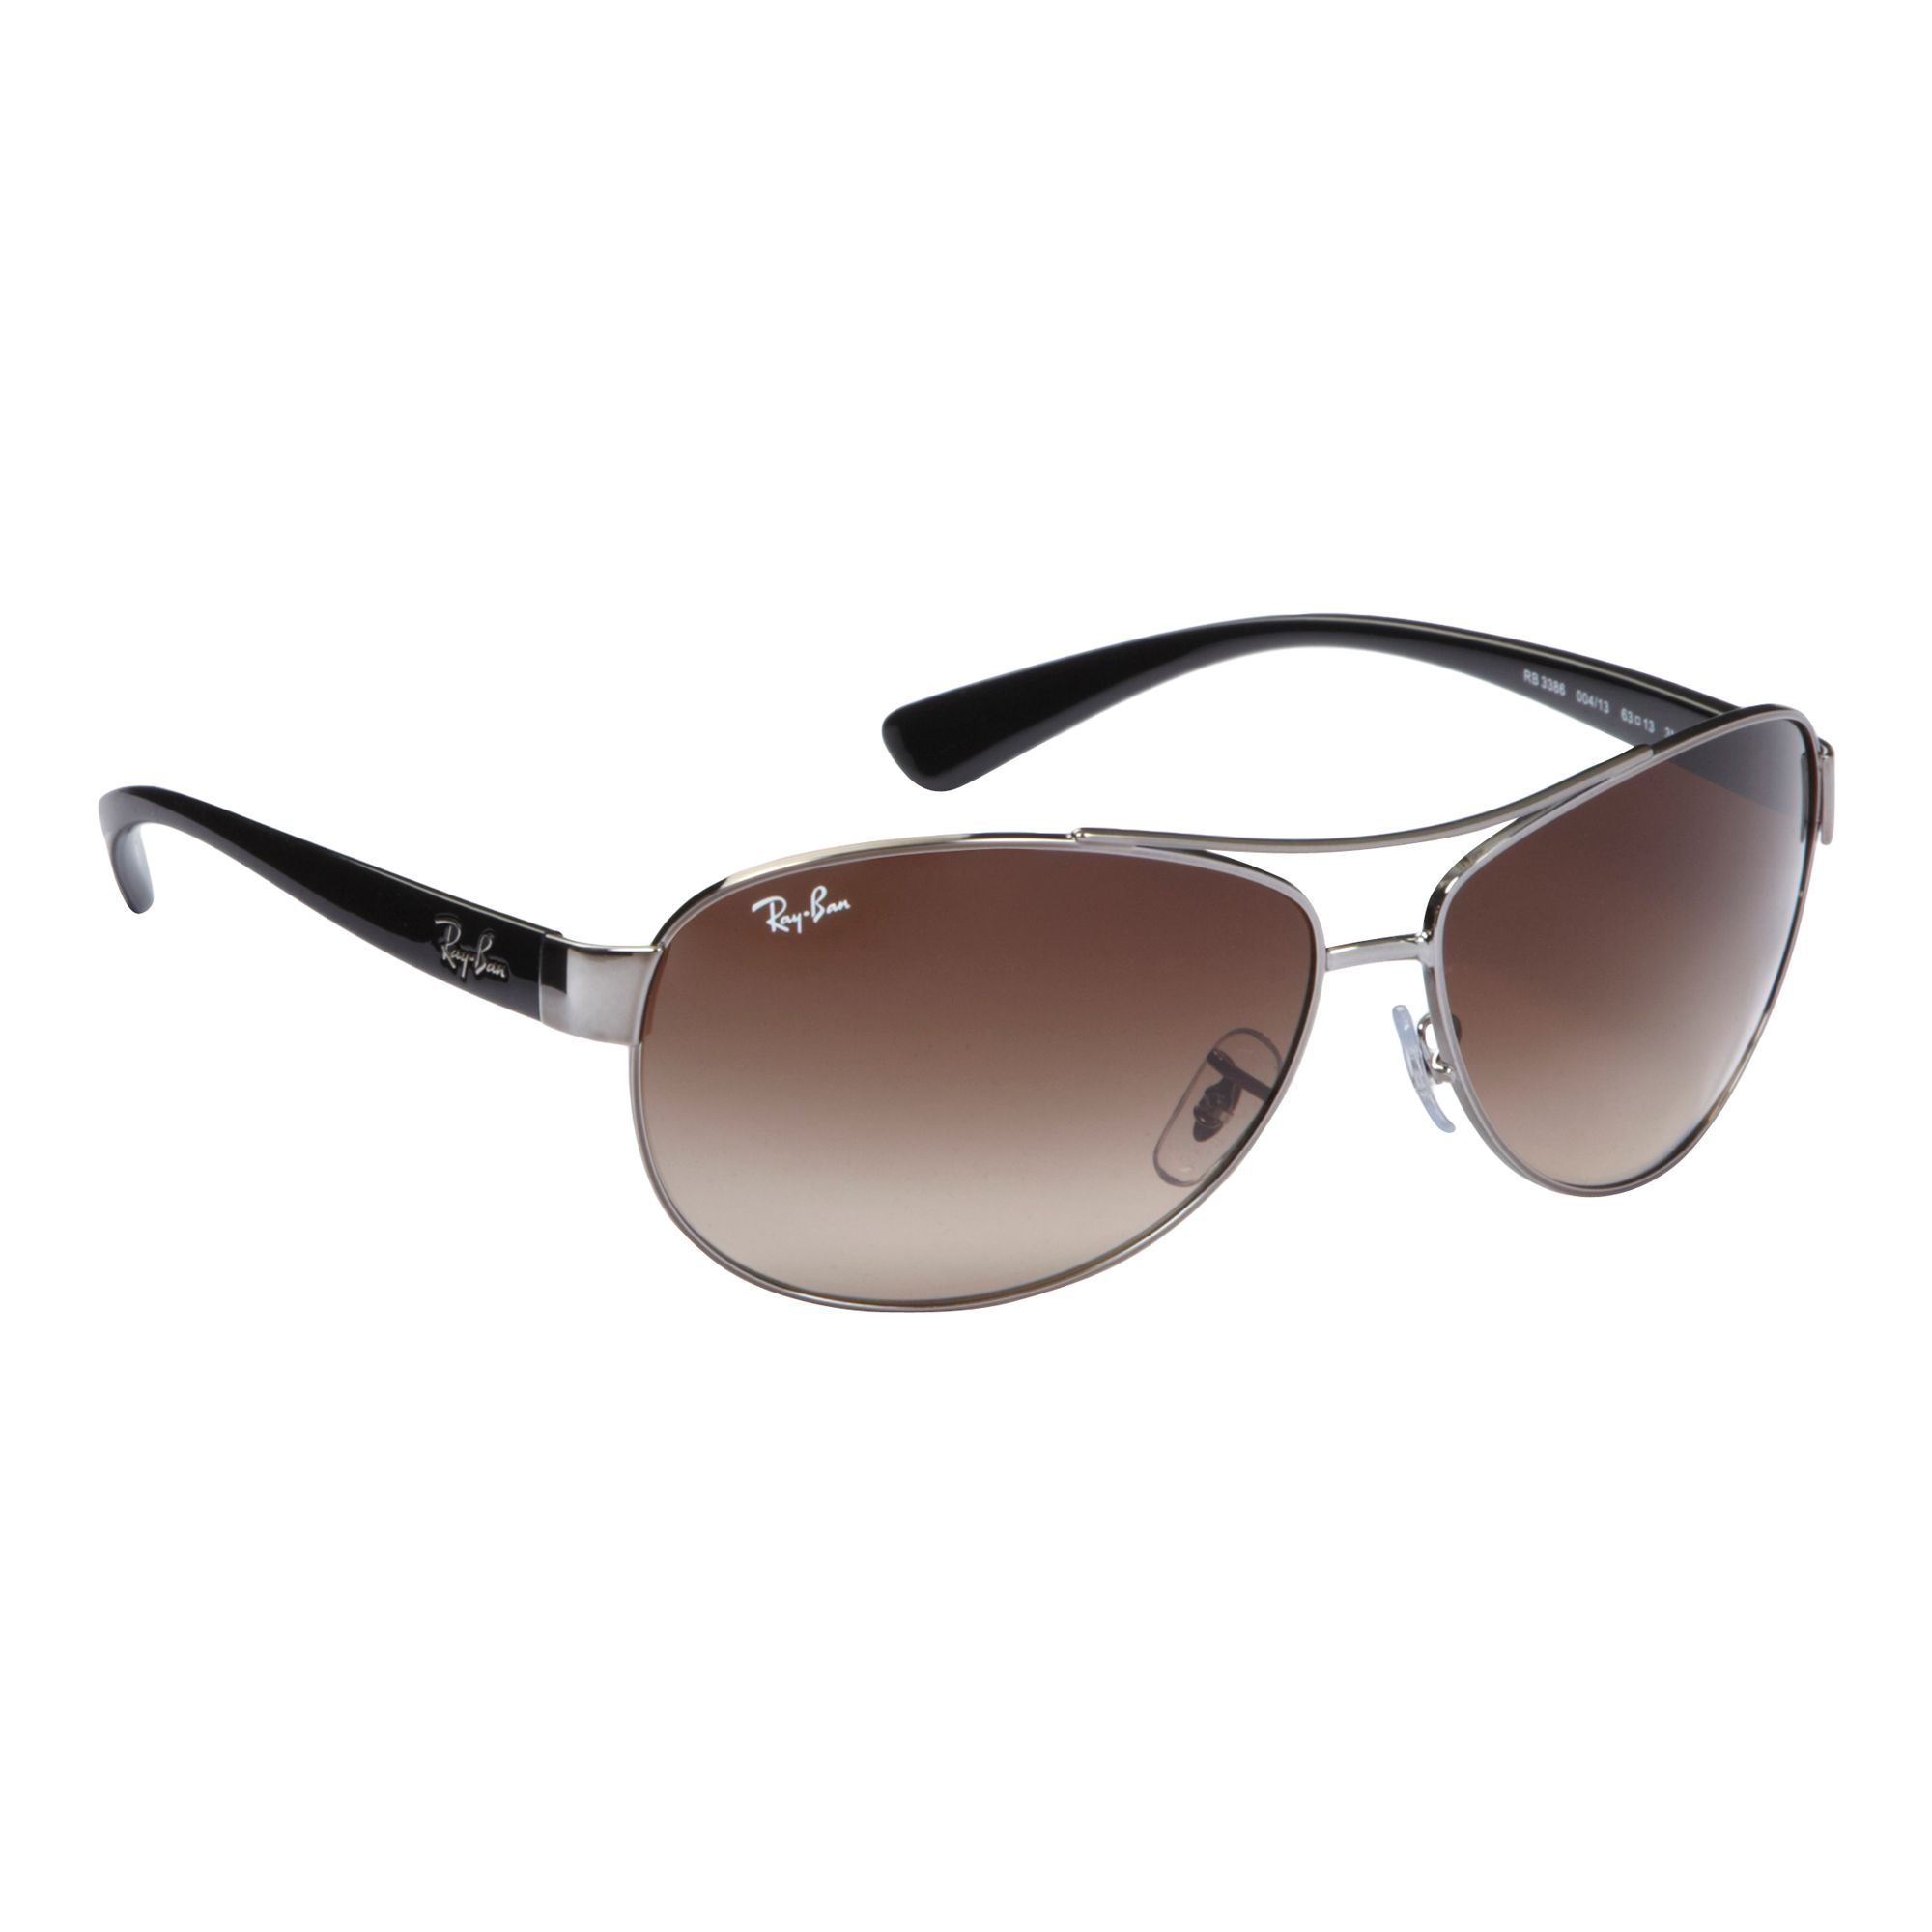 6348d722c1 Details about Ray-Ban Rb3386 Curved Aviator Gunmetal Sunglasses